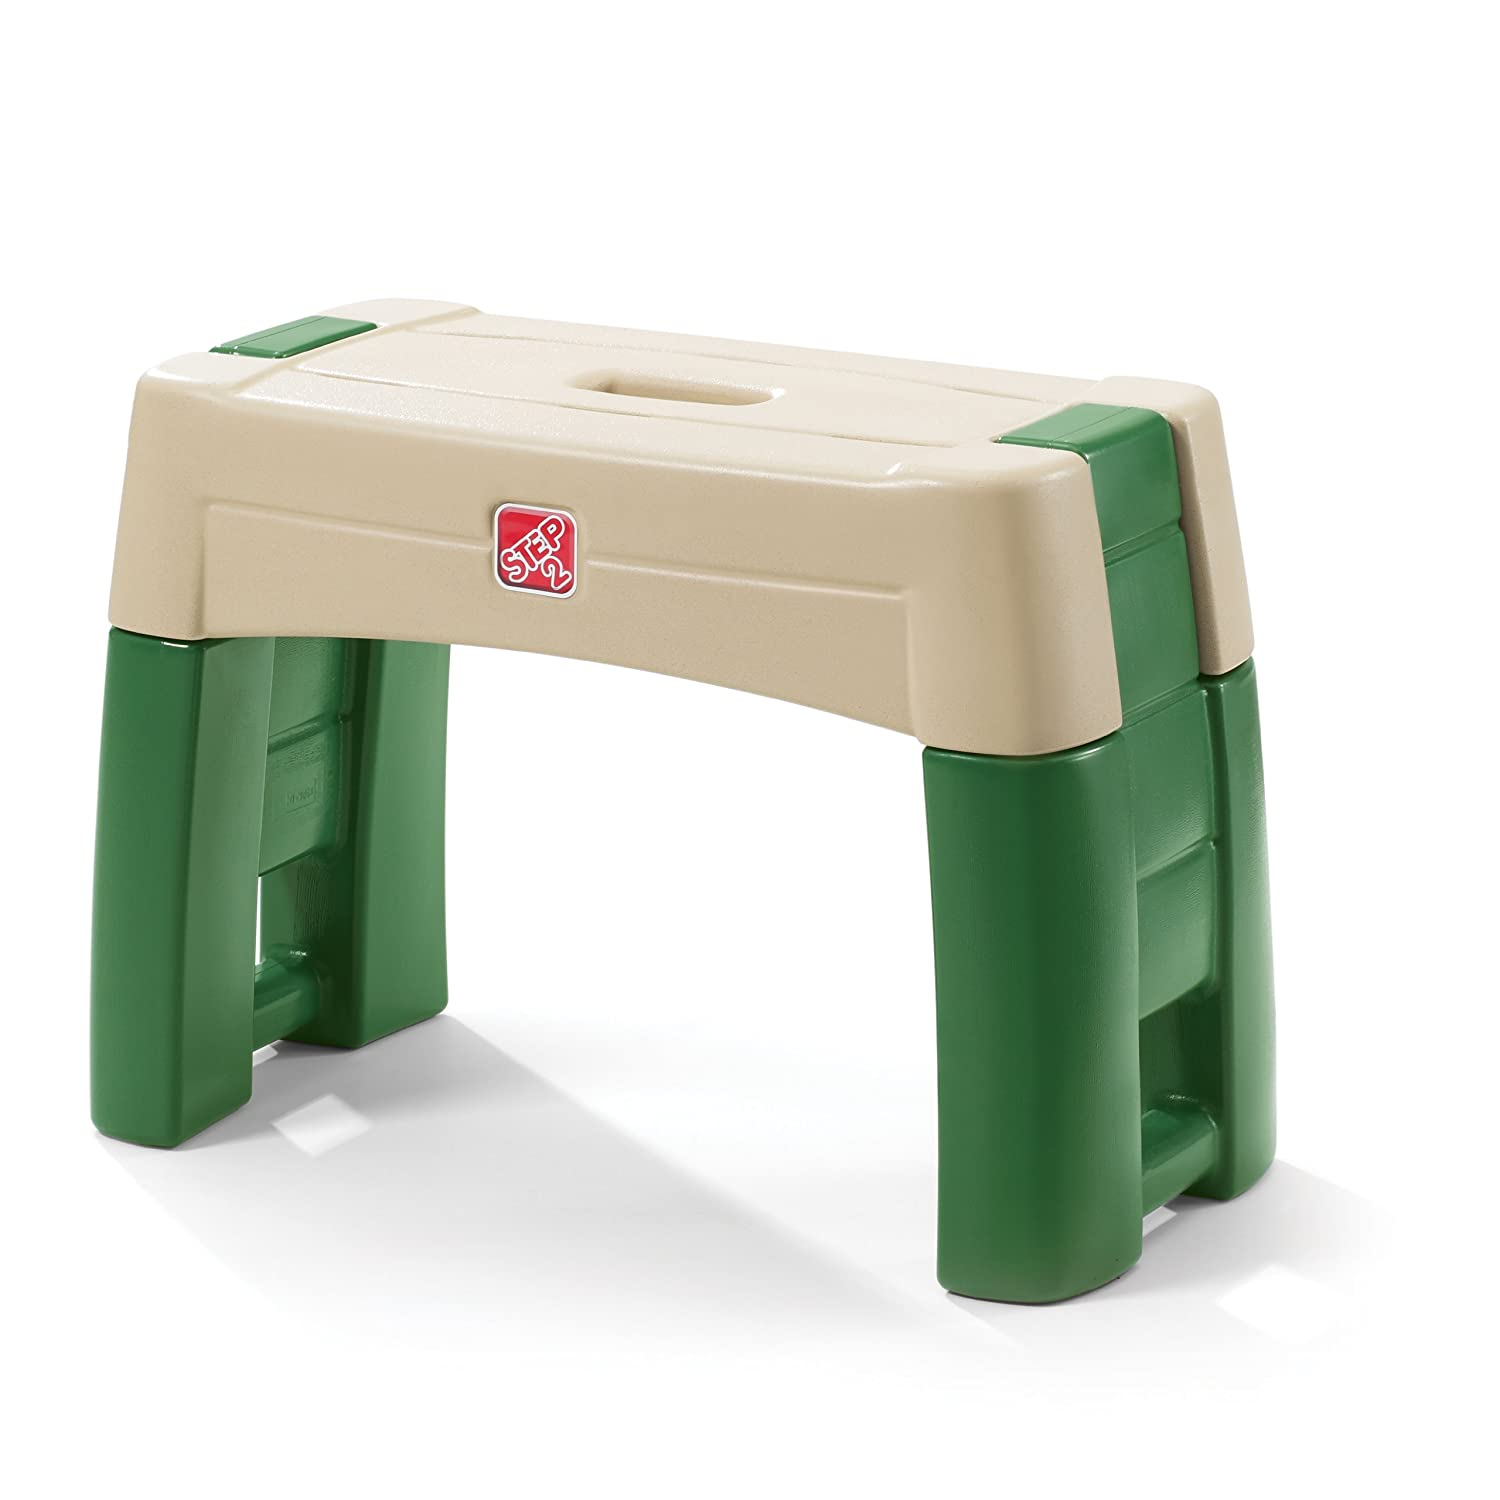 Amazon.com  Step2 Garden Kneeler Seat - Durable Plastic Gardening Stool with Kneeling Cushion Pad Multicolor  Garden Kneeling Cushions  Garden u0026 Outdoor  sc 1 st  Amazon.com & Amazon.com : Step2 Garden Kneeler Seat - Durable Plastic Gardening ... islam-shia.org